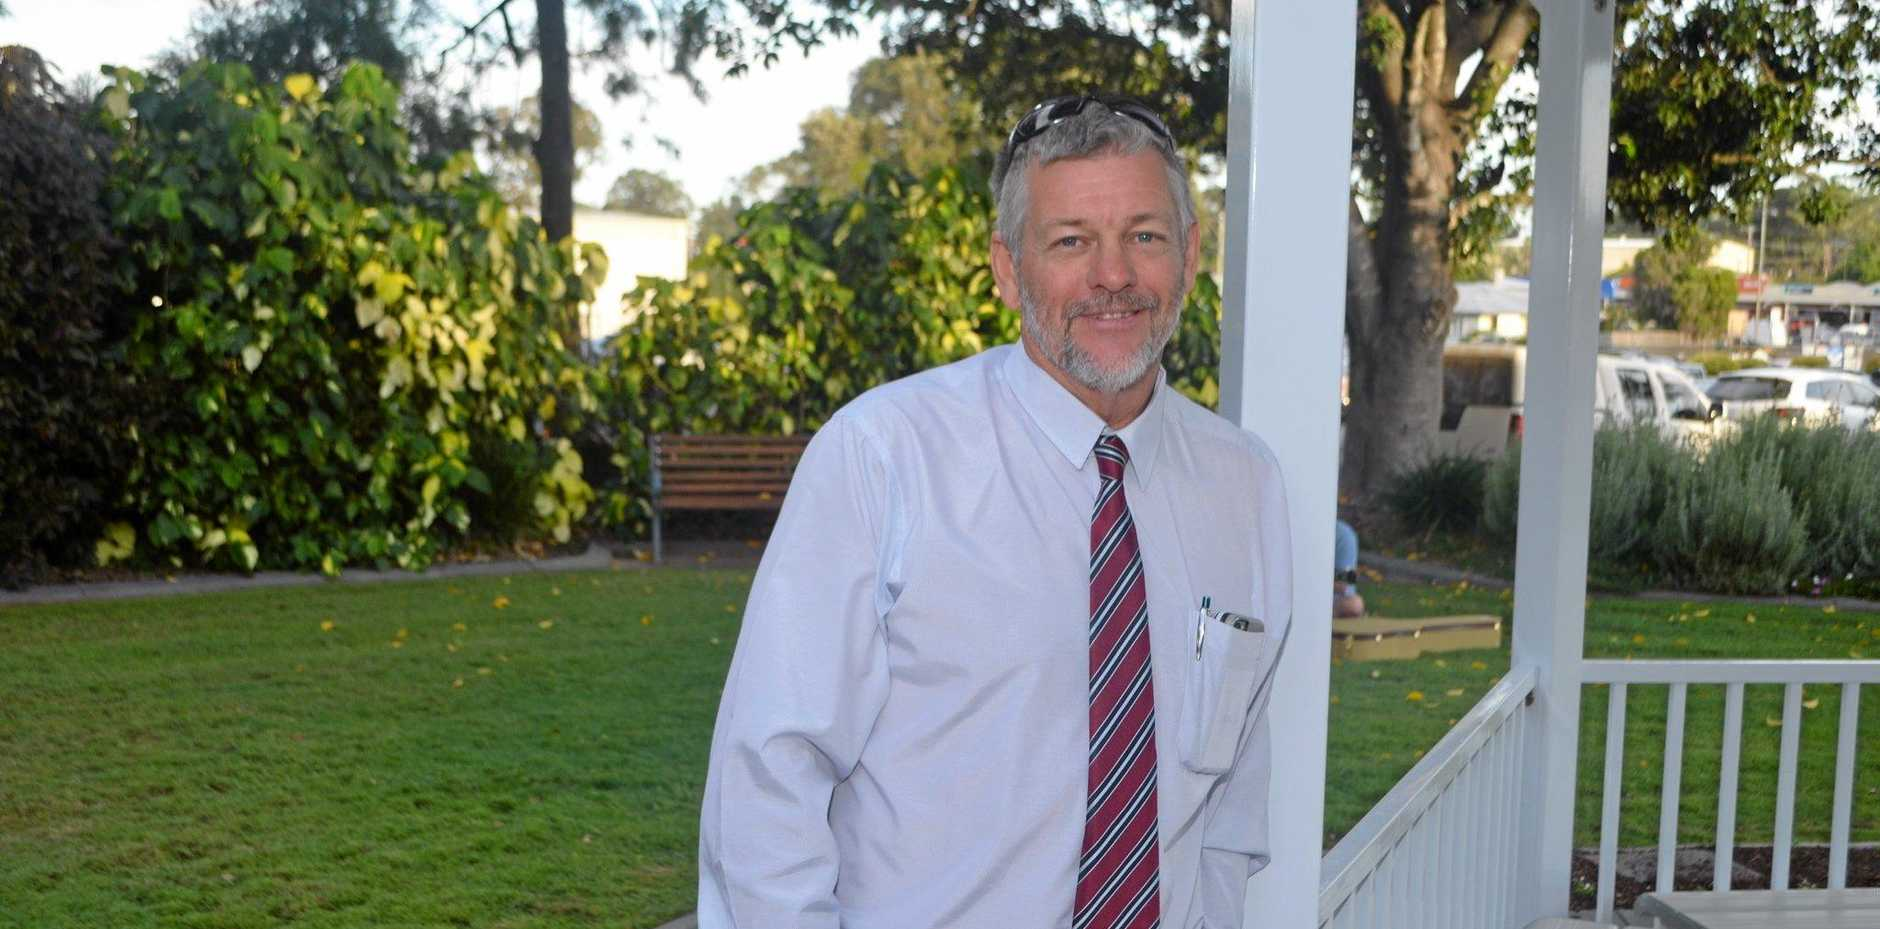 PROUD TO BE HERE: Councillor Michael Hagan candidly shares a little about his life leading up to his new role as Lockyer Valley councillor.